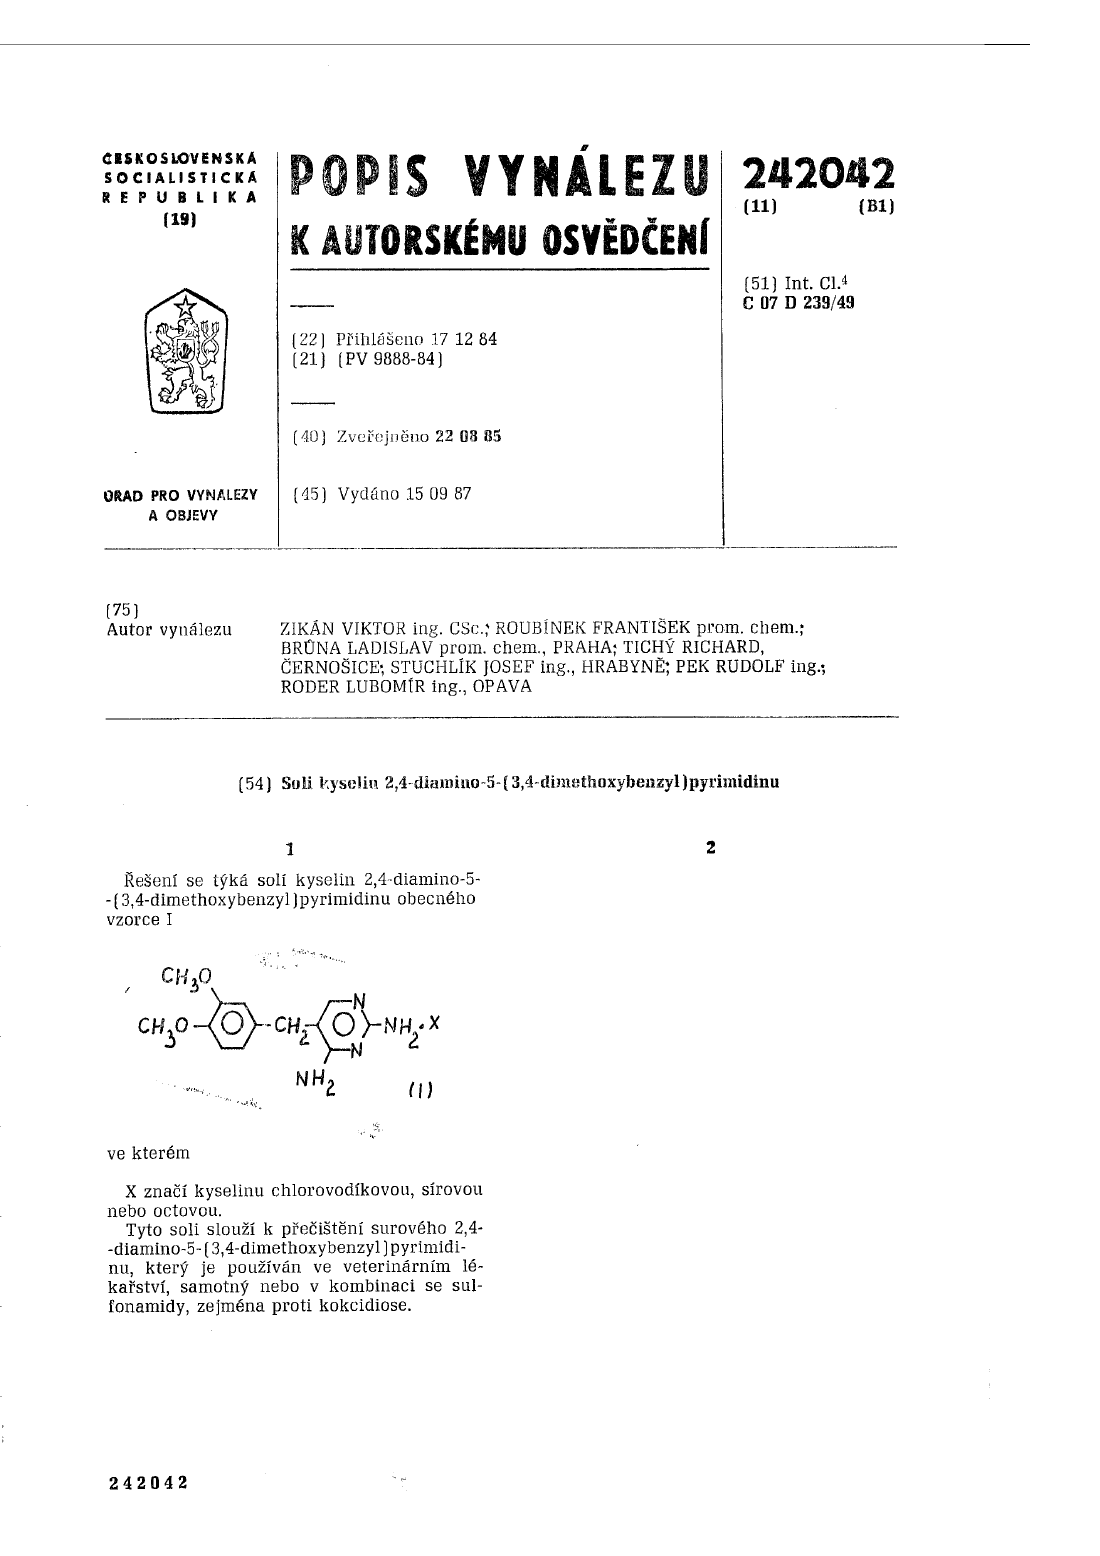 Soli kyselin 2,4-diamino-5-(3,4-dimethoxybenzyl)pyrimidinu